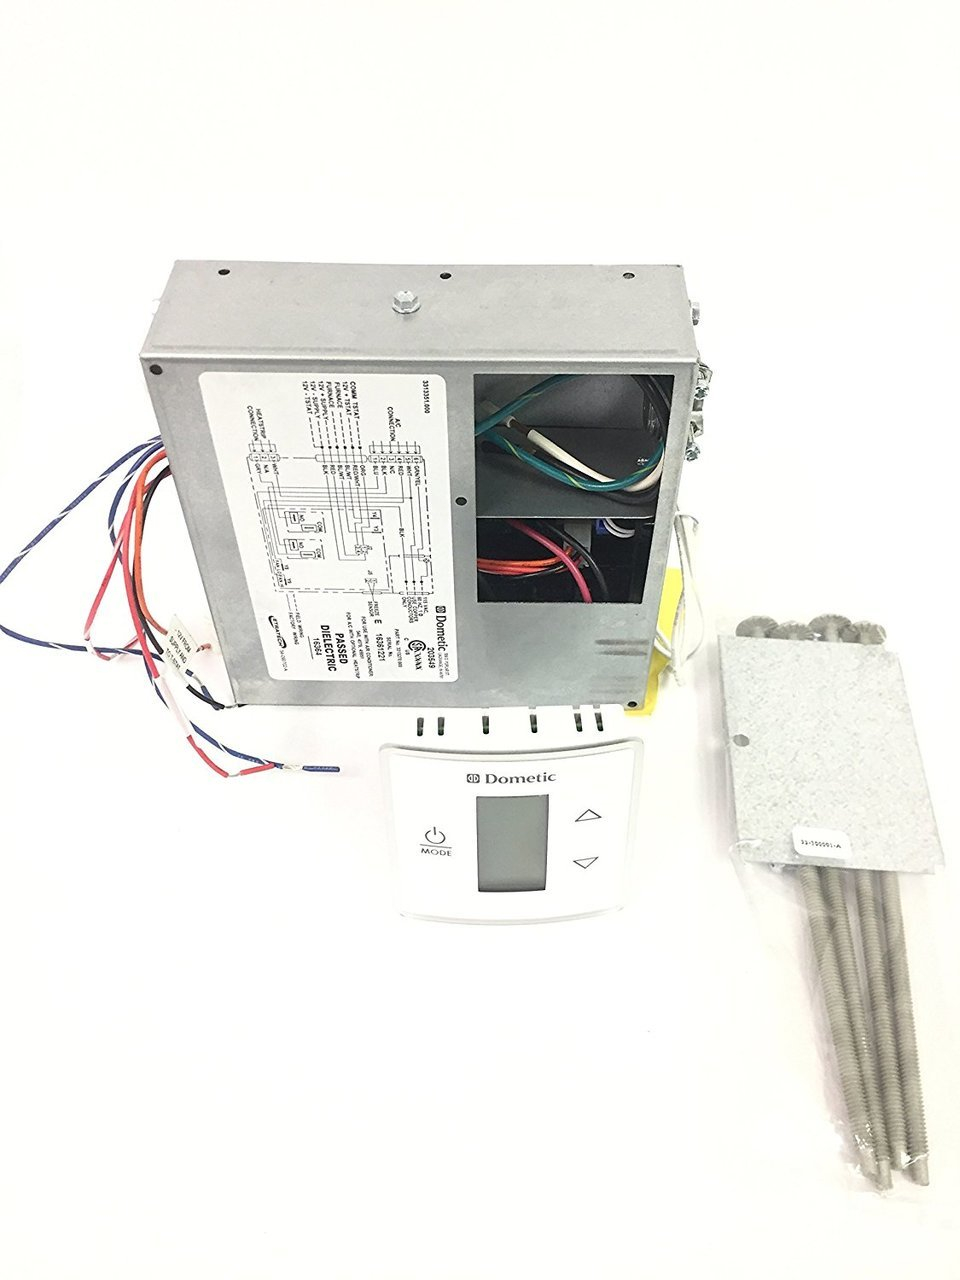 Gallery Of Dometic Capacitive Touch Thermostat Wiring